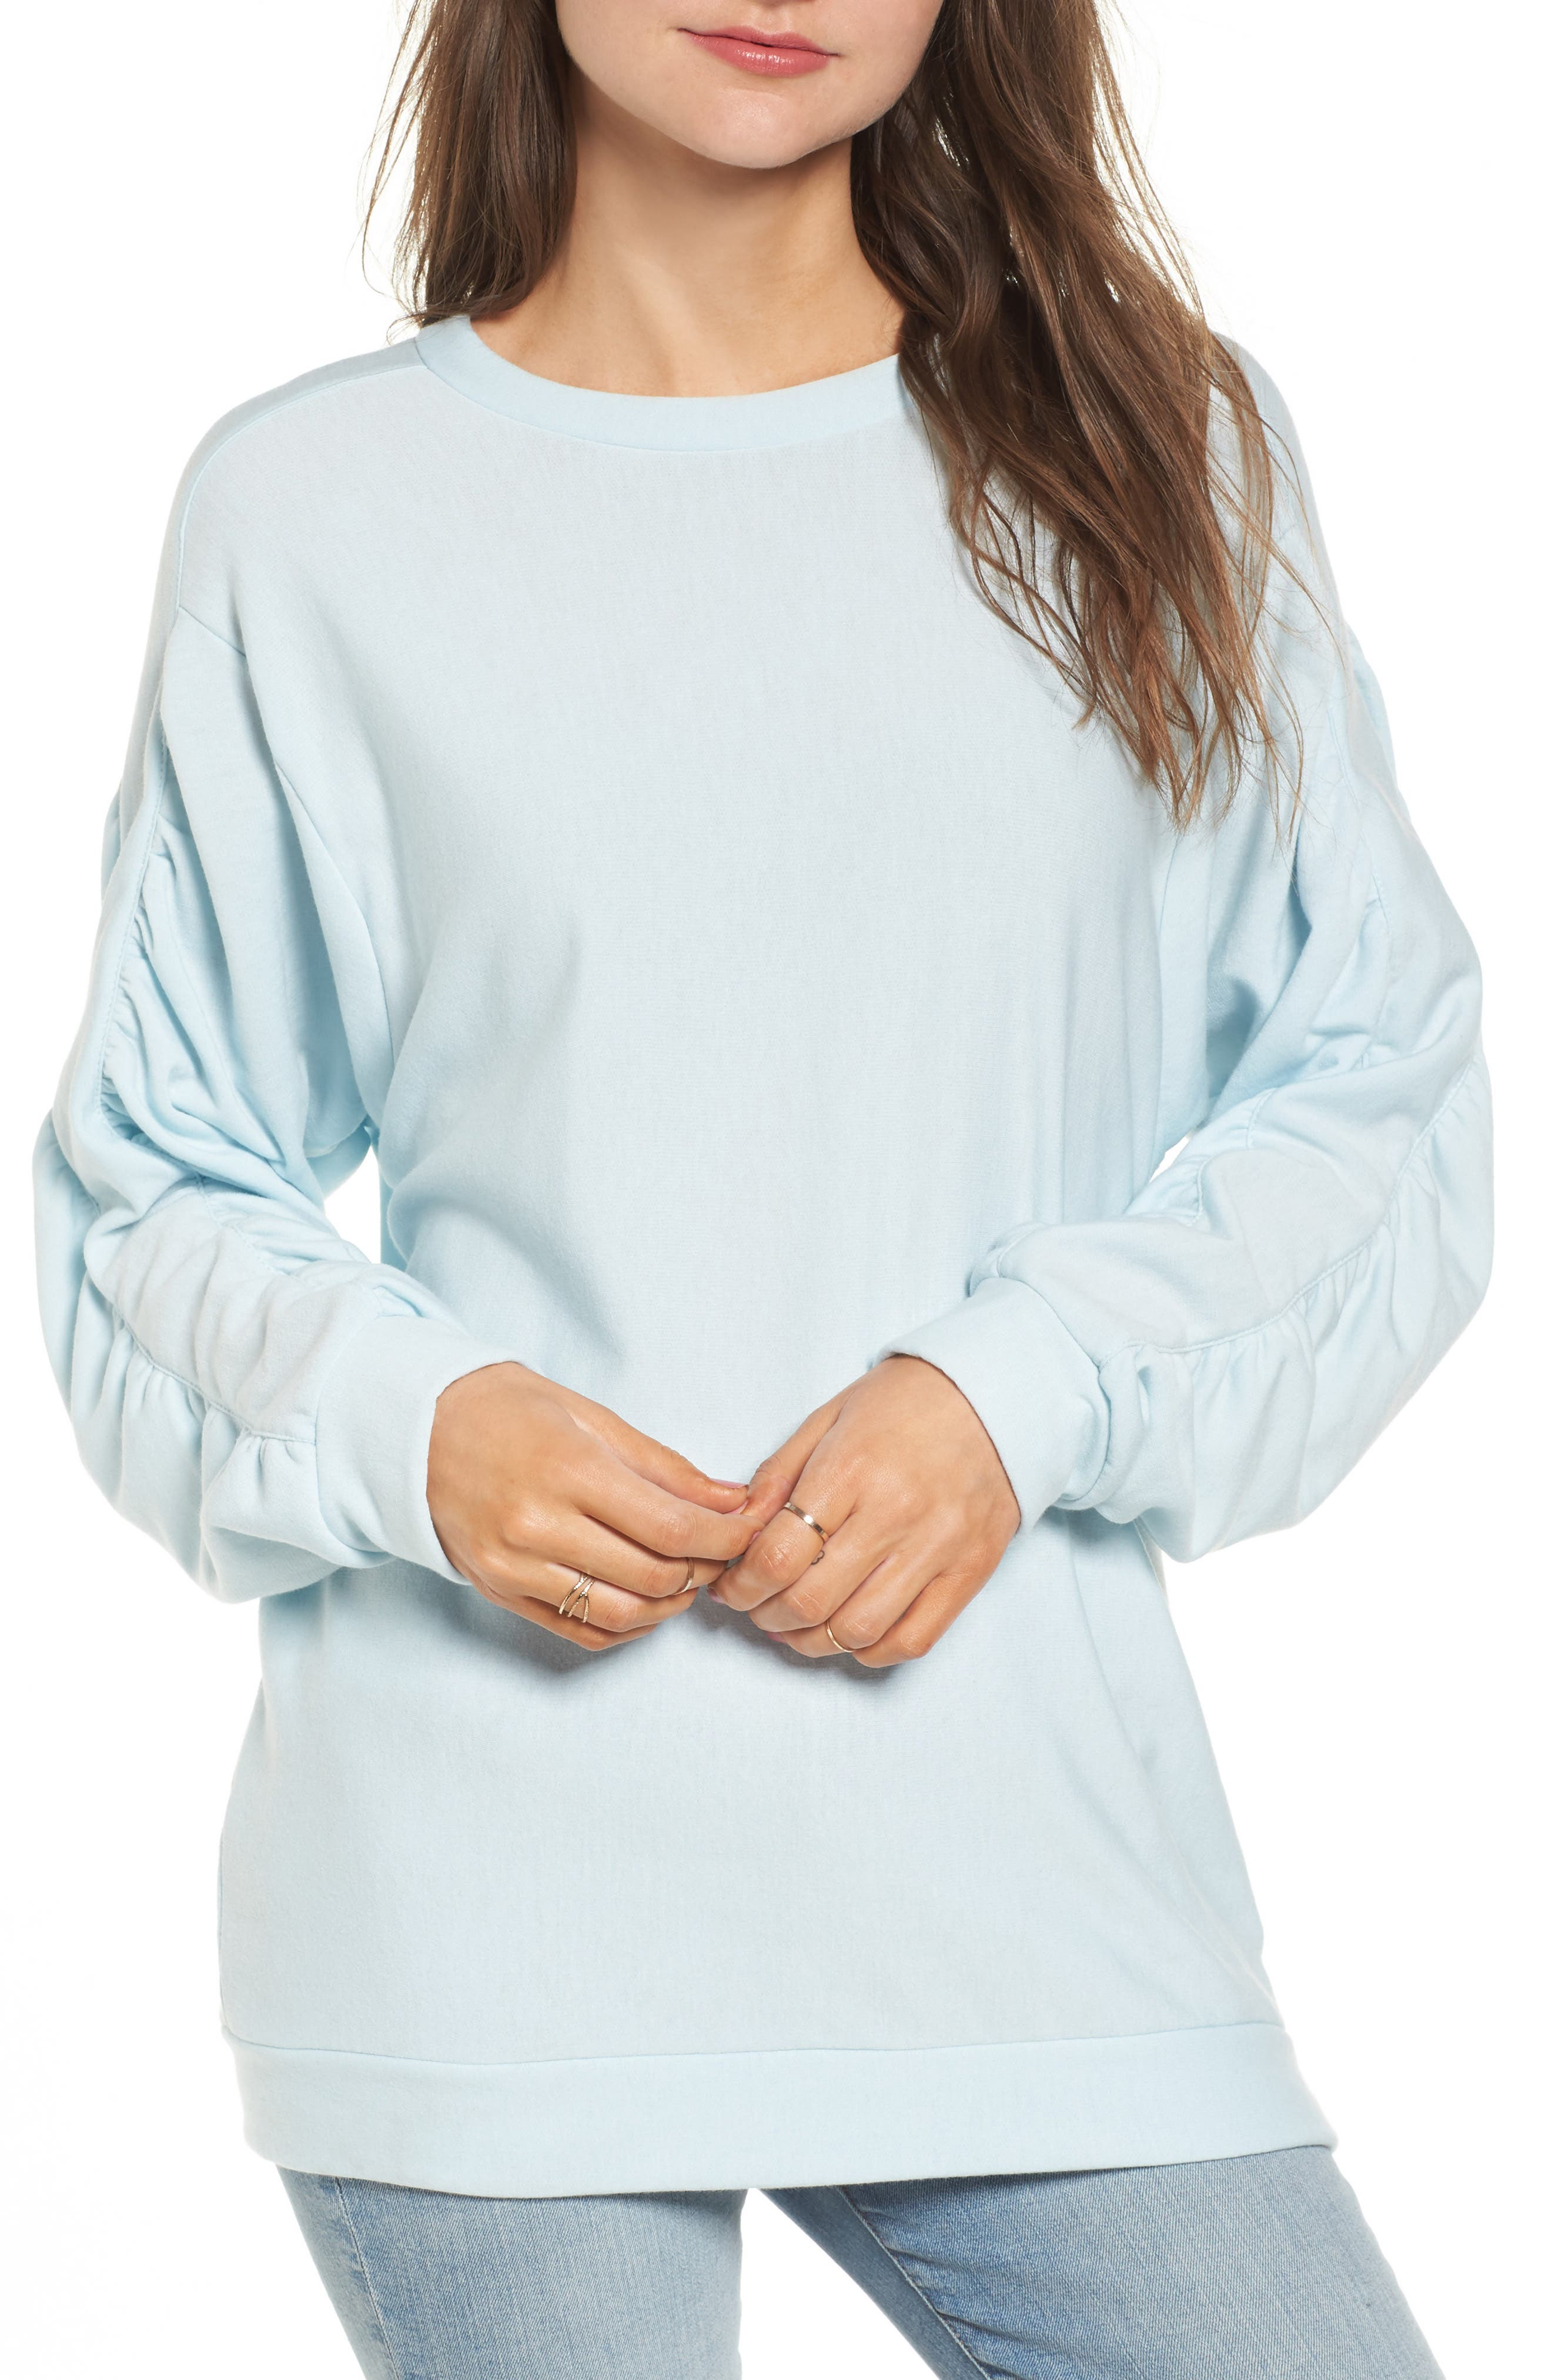 Alternate Image 1 Selected - PST by Project Social T Ruched Sleeve Sweatshirt